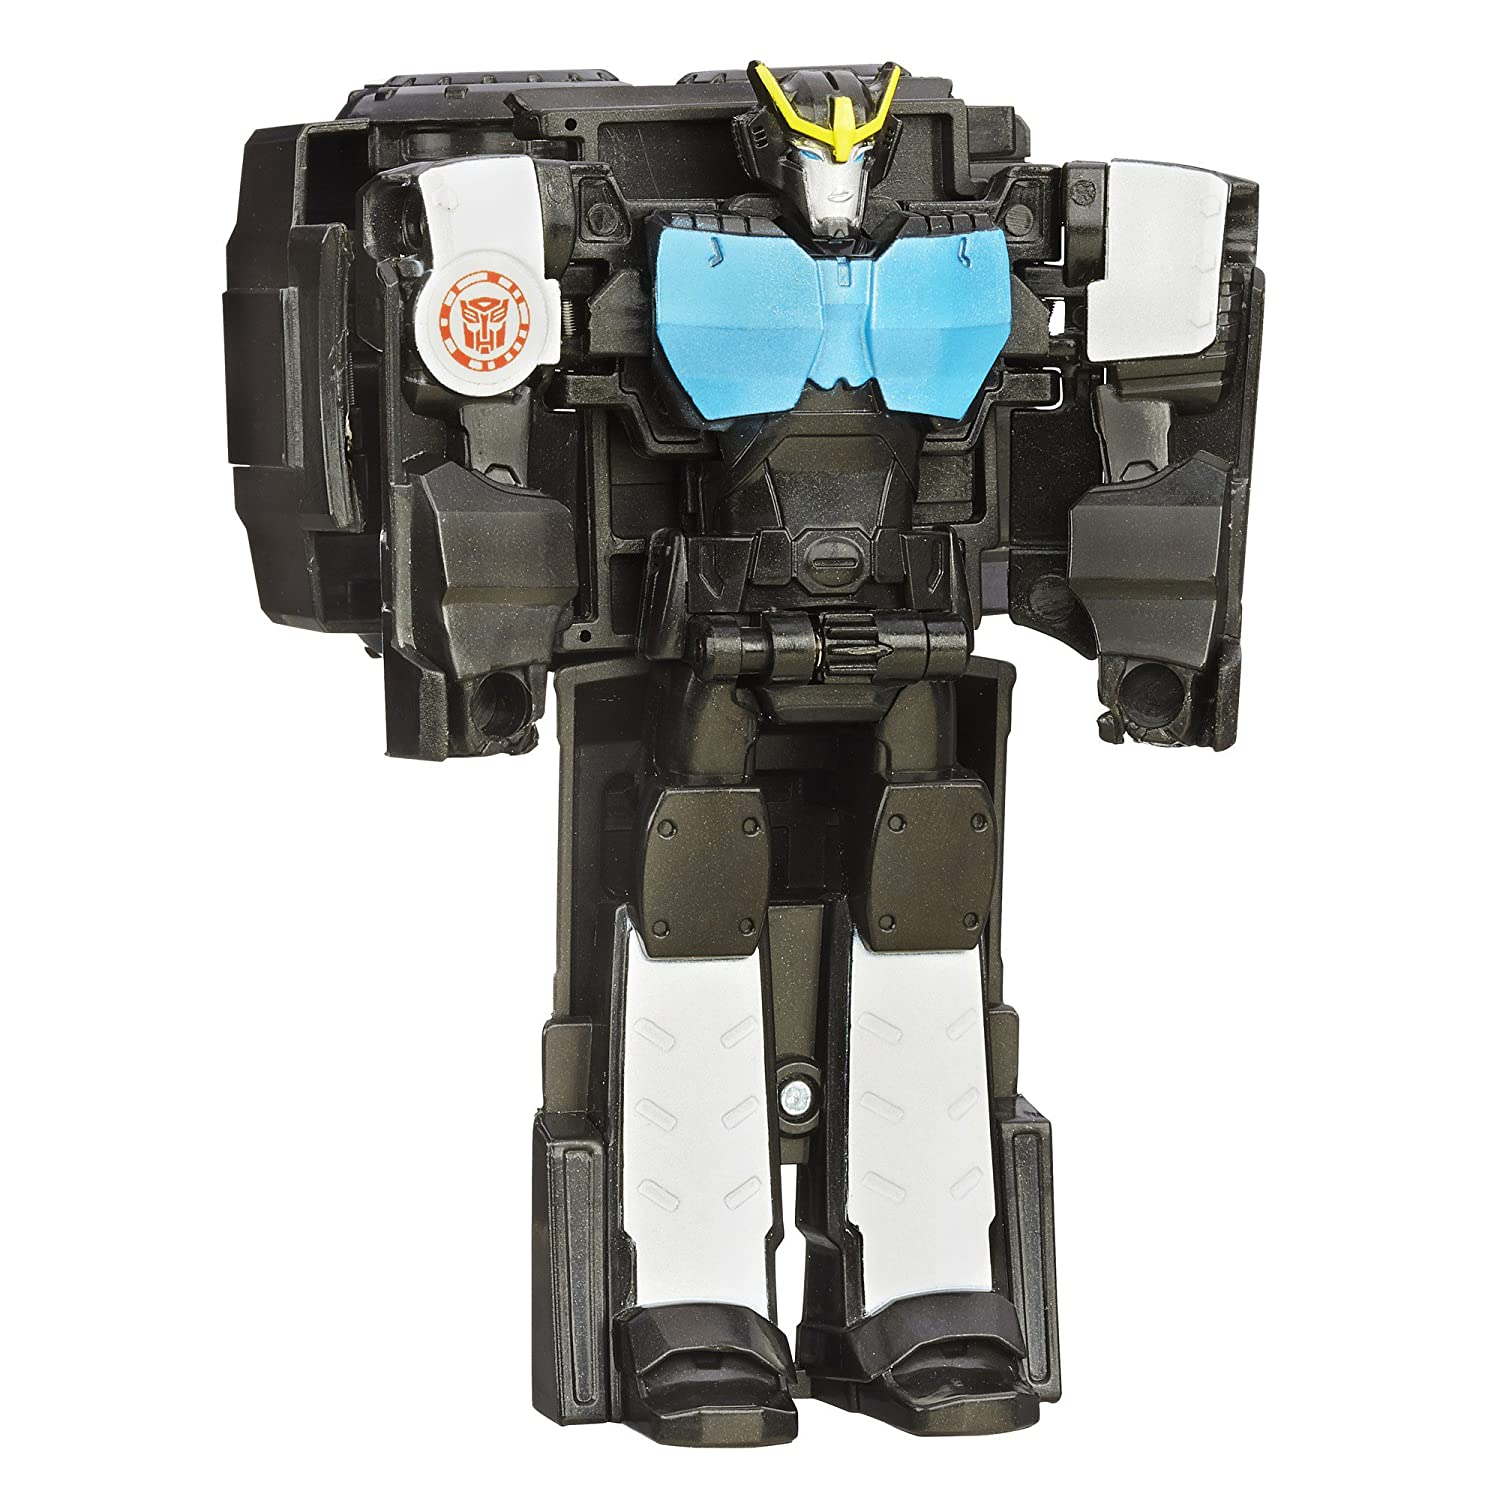 Transformers Robots in Disguise 1-Step Changers Patrol Mode Strongarm Figure Hasbro B3048AS0